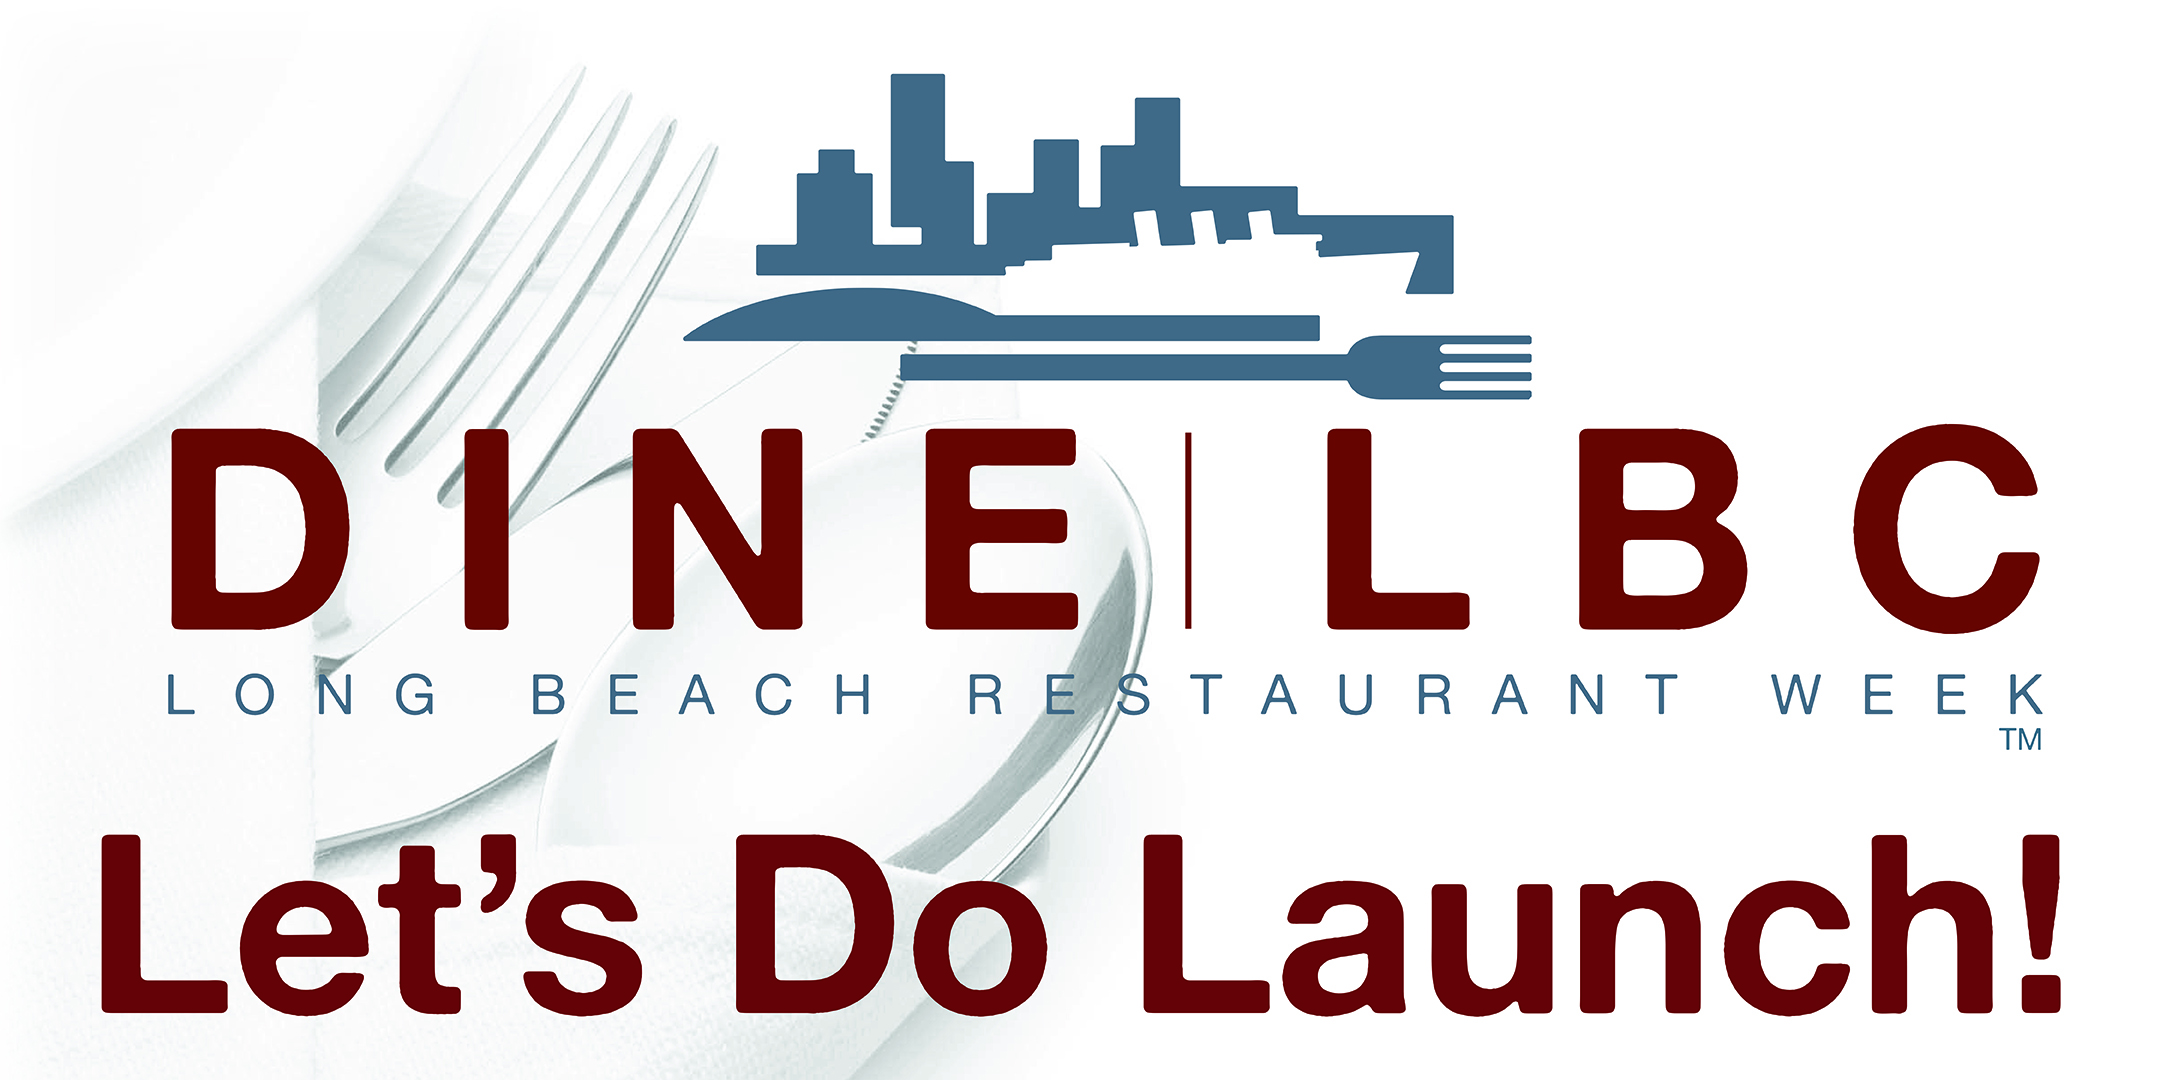 launch party logo